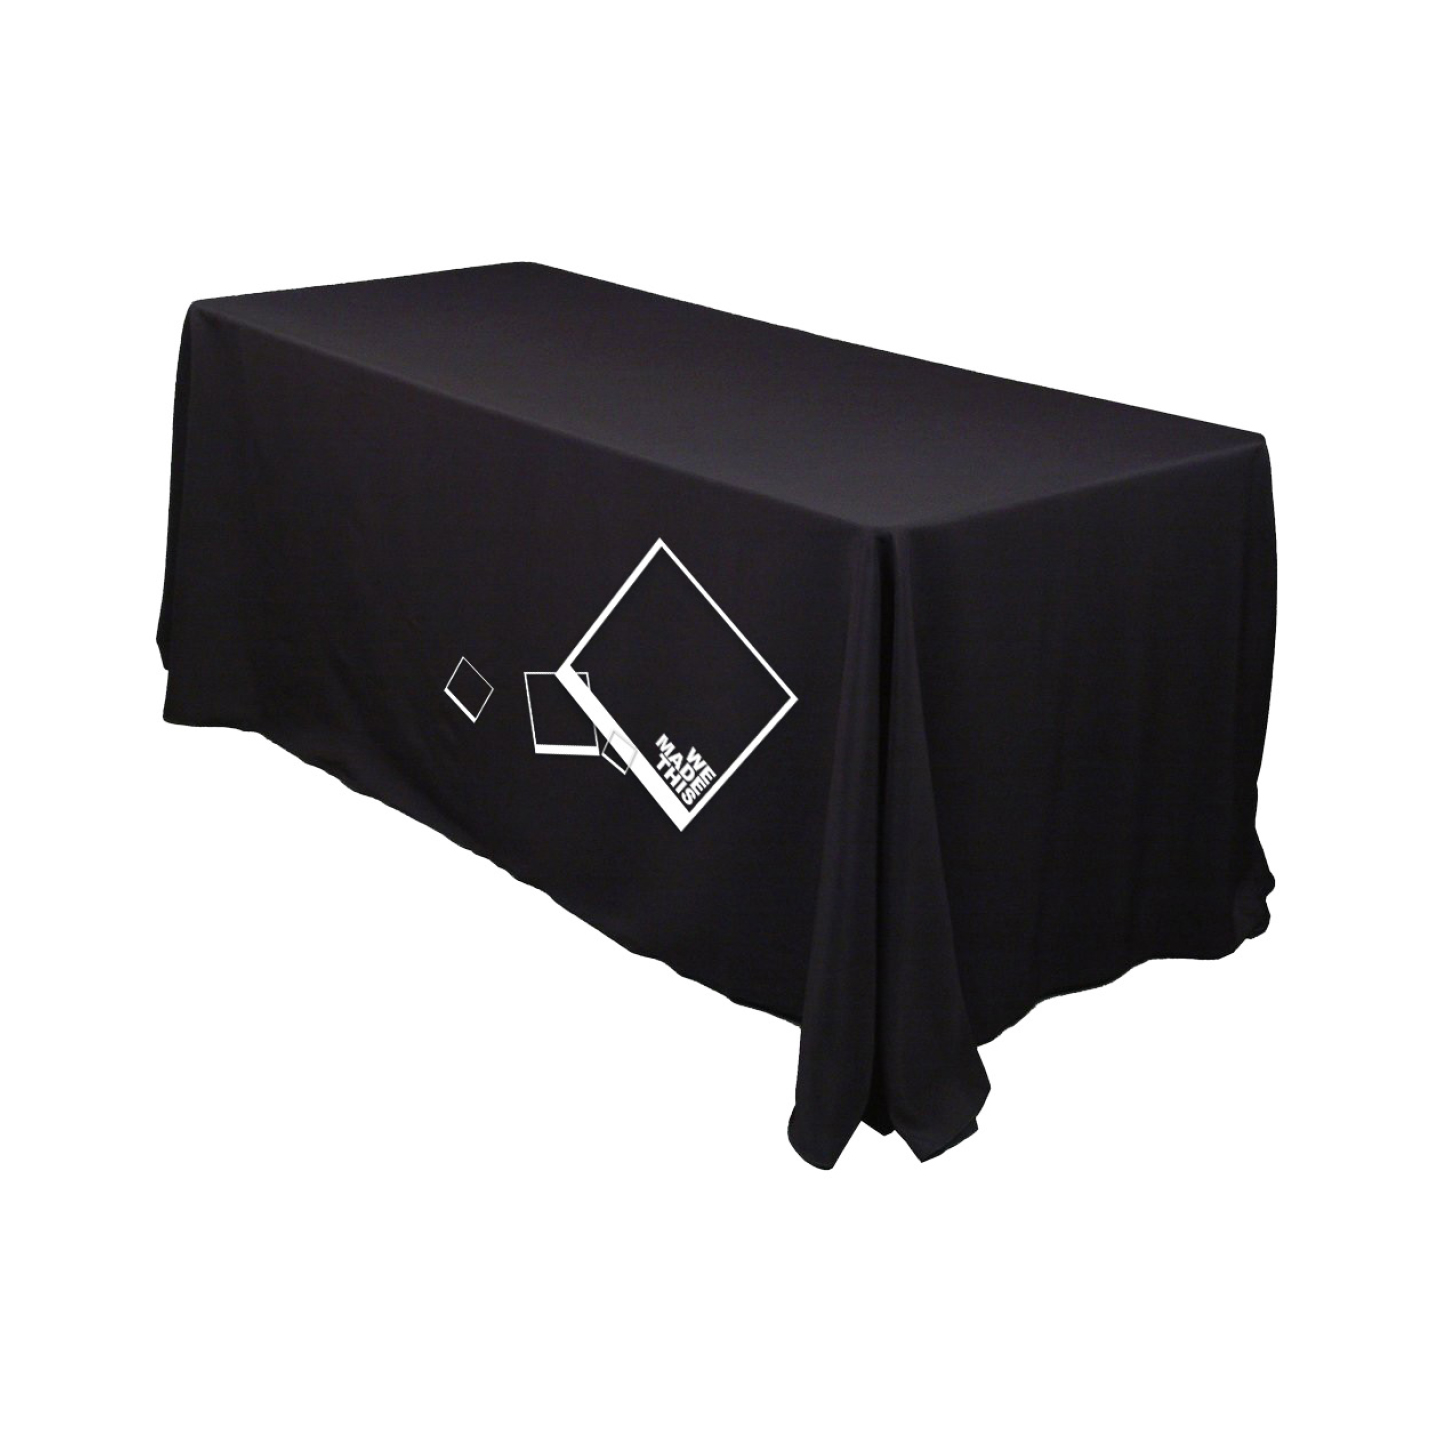 Branded Tablecloths Expand A Sign